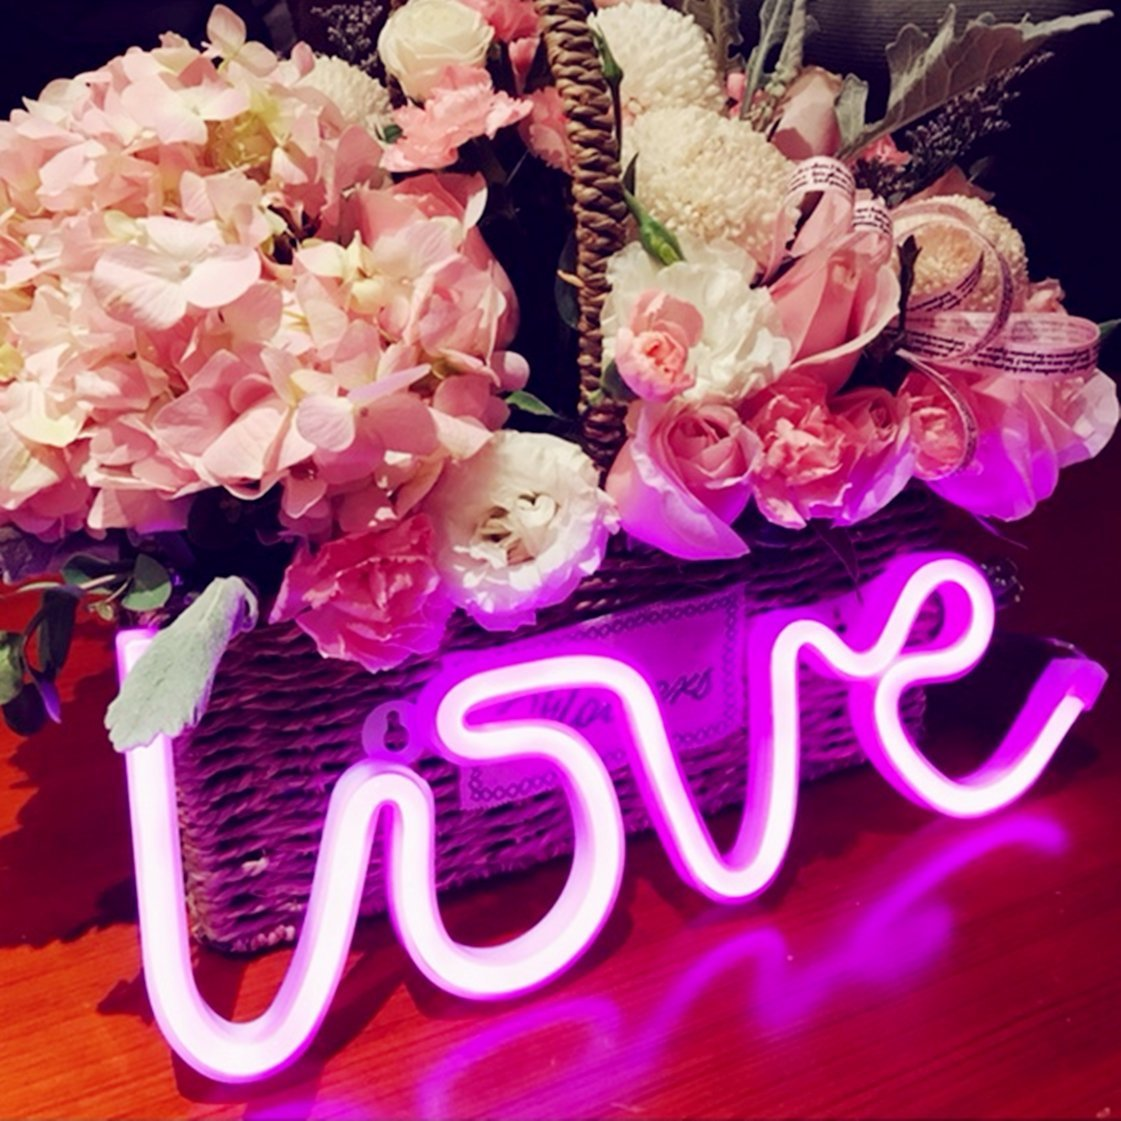 Neon Love Signs Light 13.70'' Large LED Love Art Decorative Marquee Sign - Wall Decor/Table Decor for Wedding Party Kids Room Living Room House Bar Pub Hotel Beach Recreational (Purple Pink) by QiaoFei (Image #5)